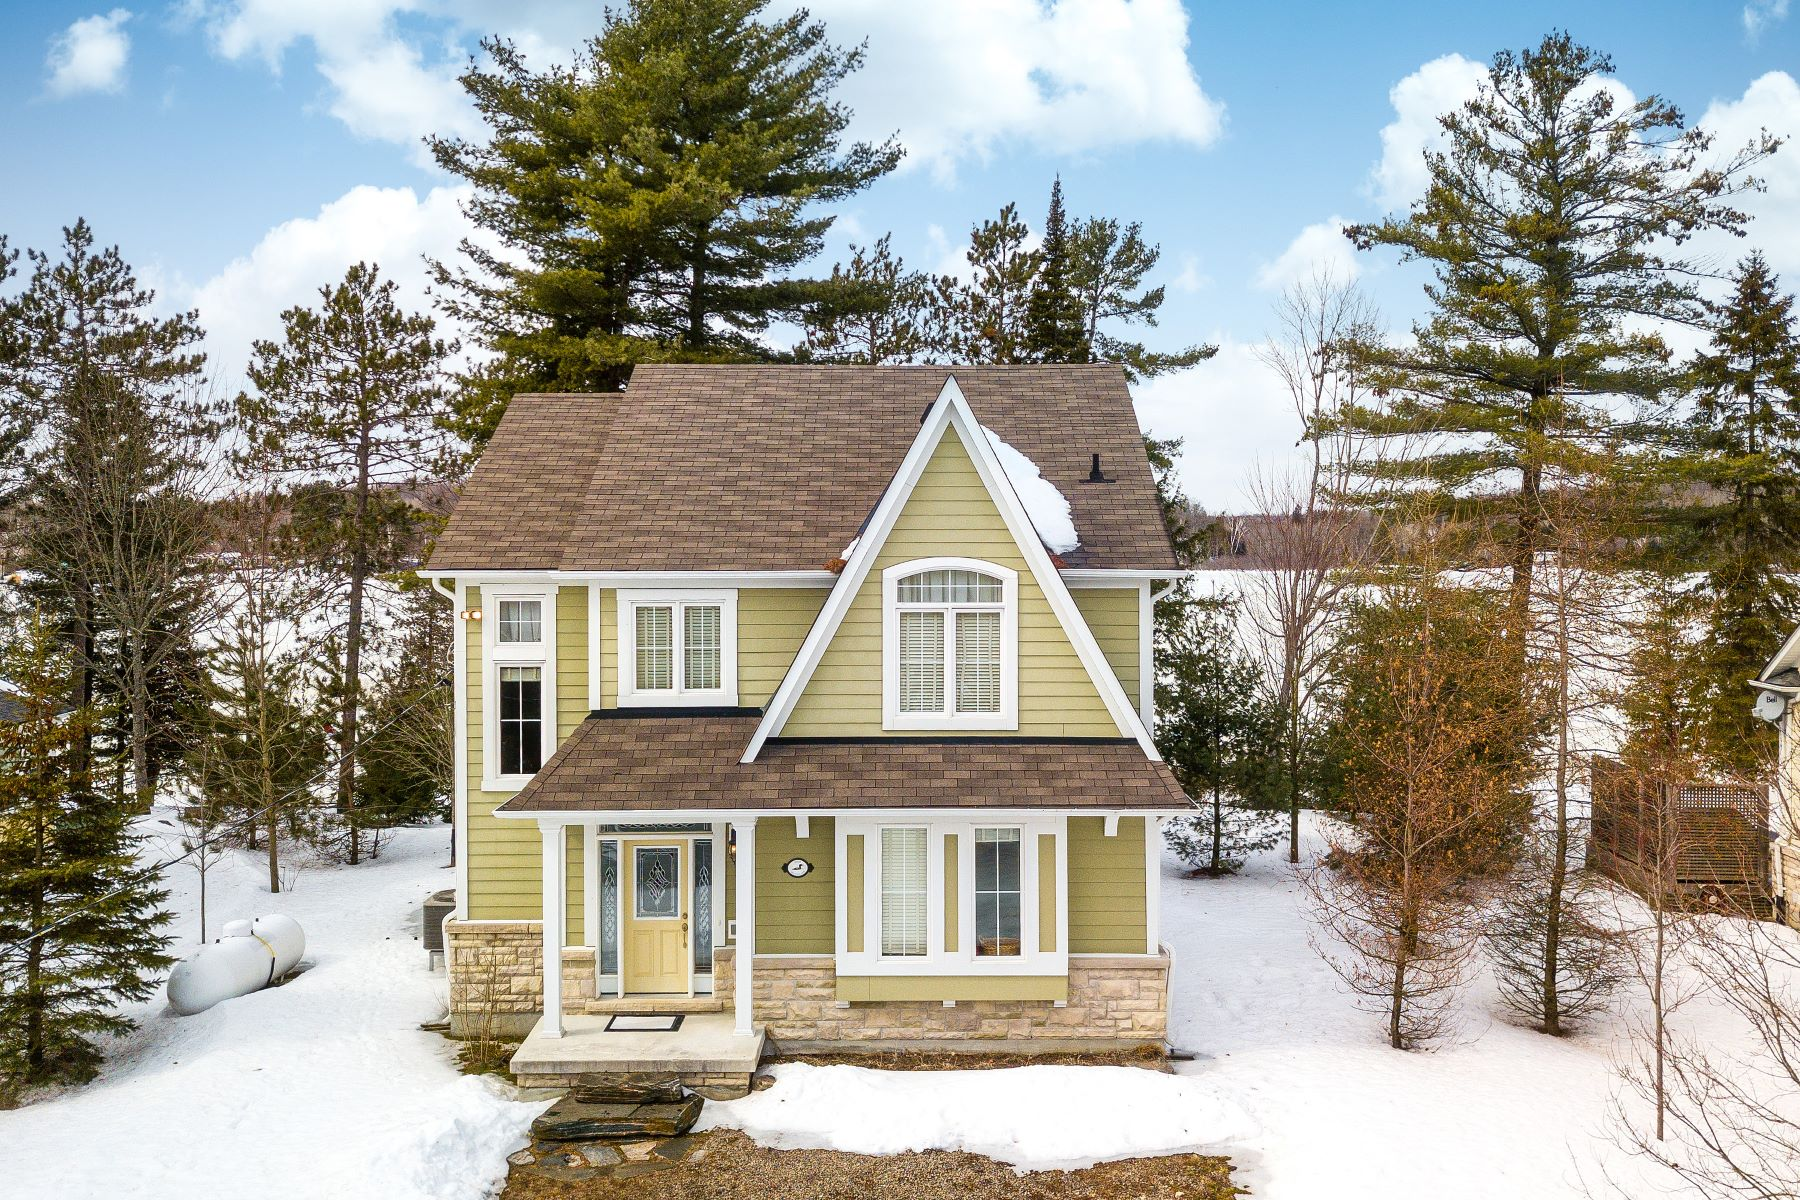 Single Family Homes for Sale at Minden Hills Lakehouse 1214 Hamilton Rd Haliburton, Ontario K0M 2K0 Canada